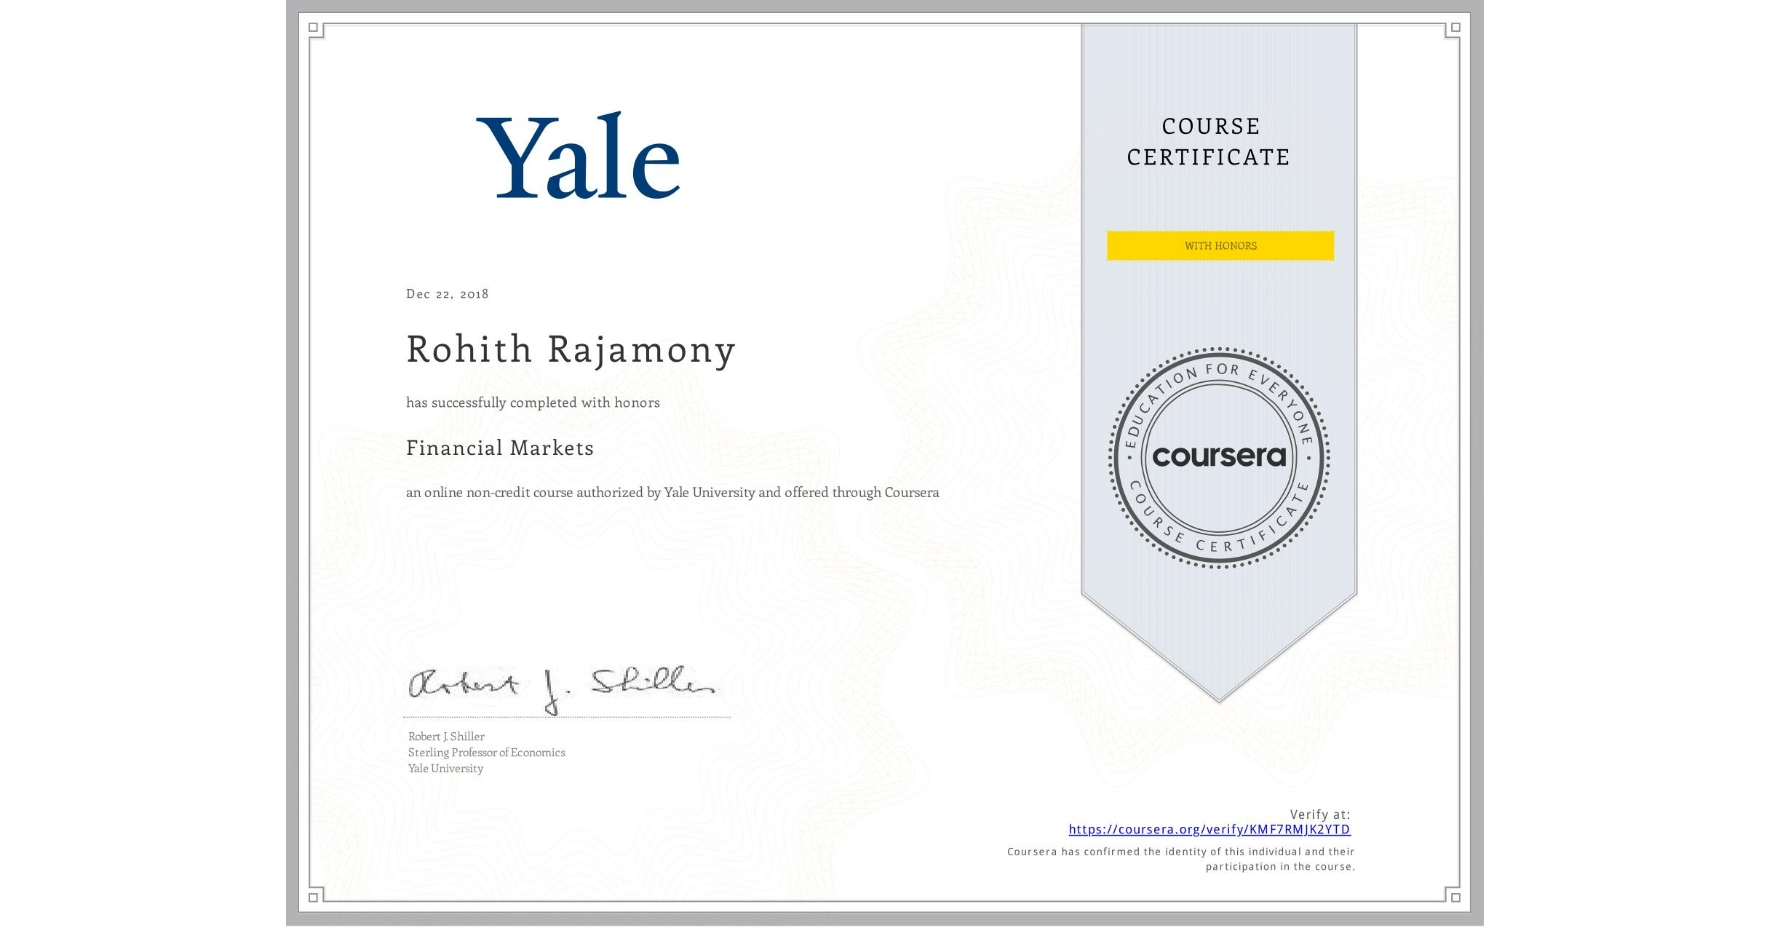 View certificate for Rohith Rajamony, Financial Markets, an online non-credit course authorized by Yale University and offered through Coursera